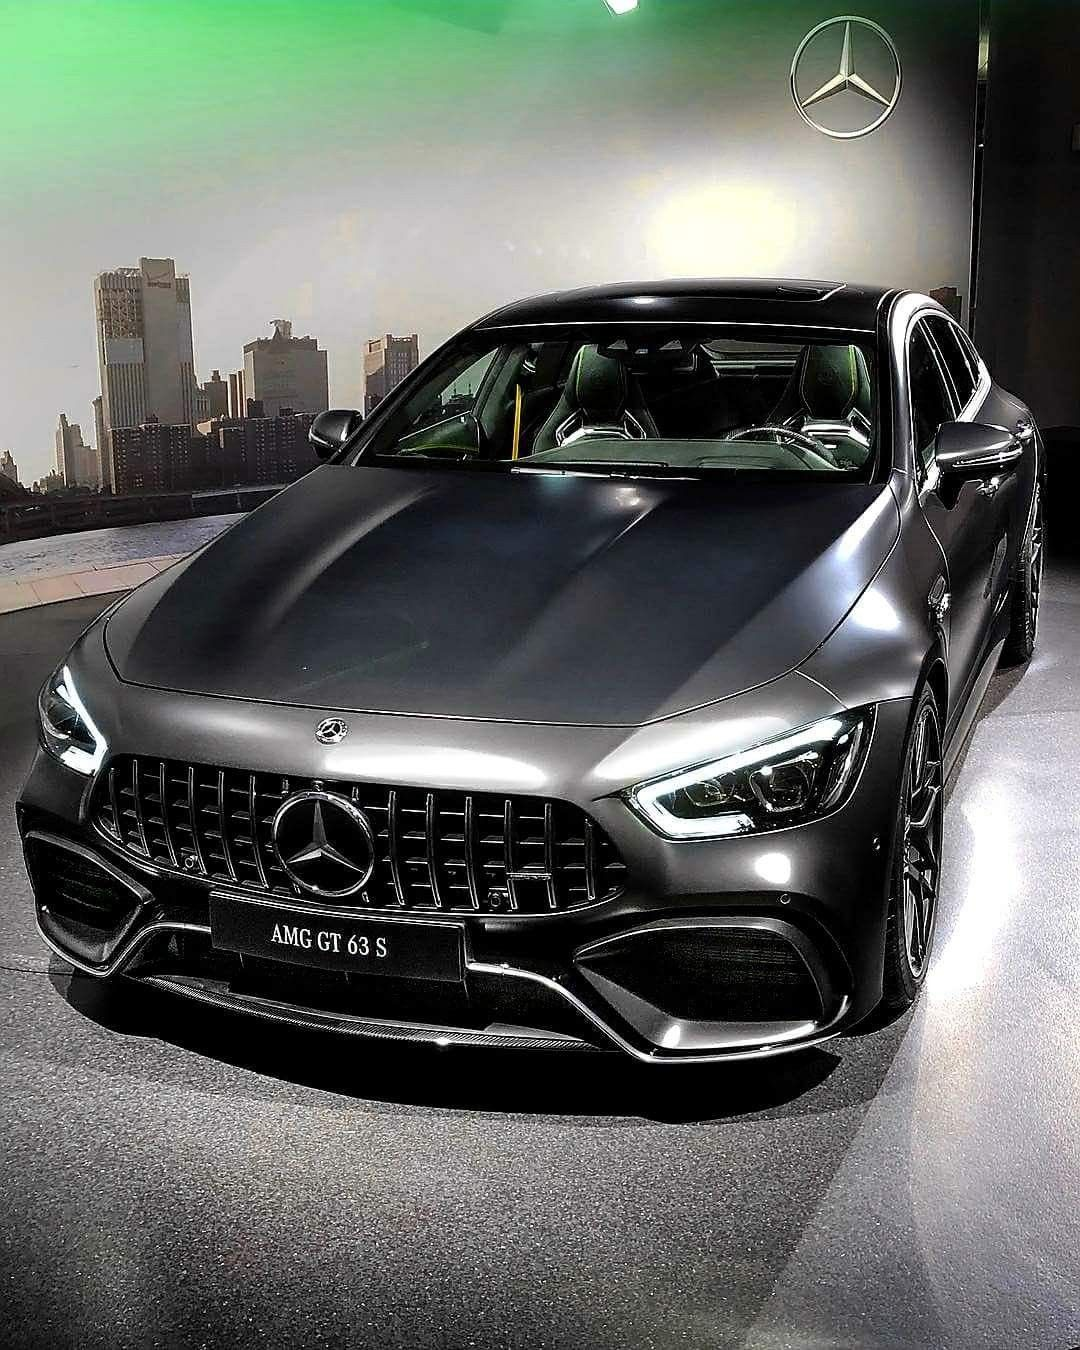 The New Mercedes Amg Gt 63 S 4matic Edition 1 Even More